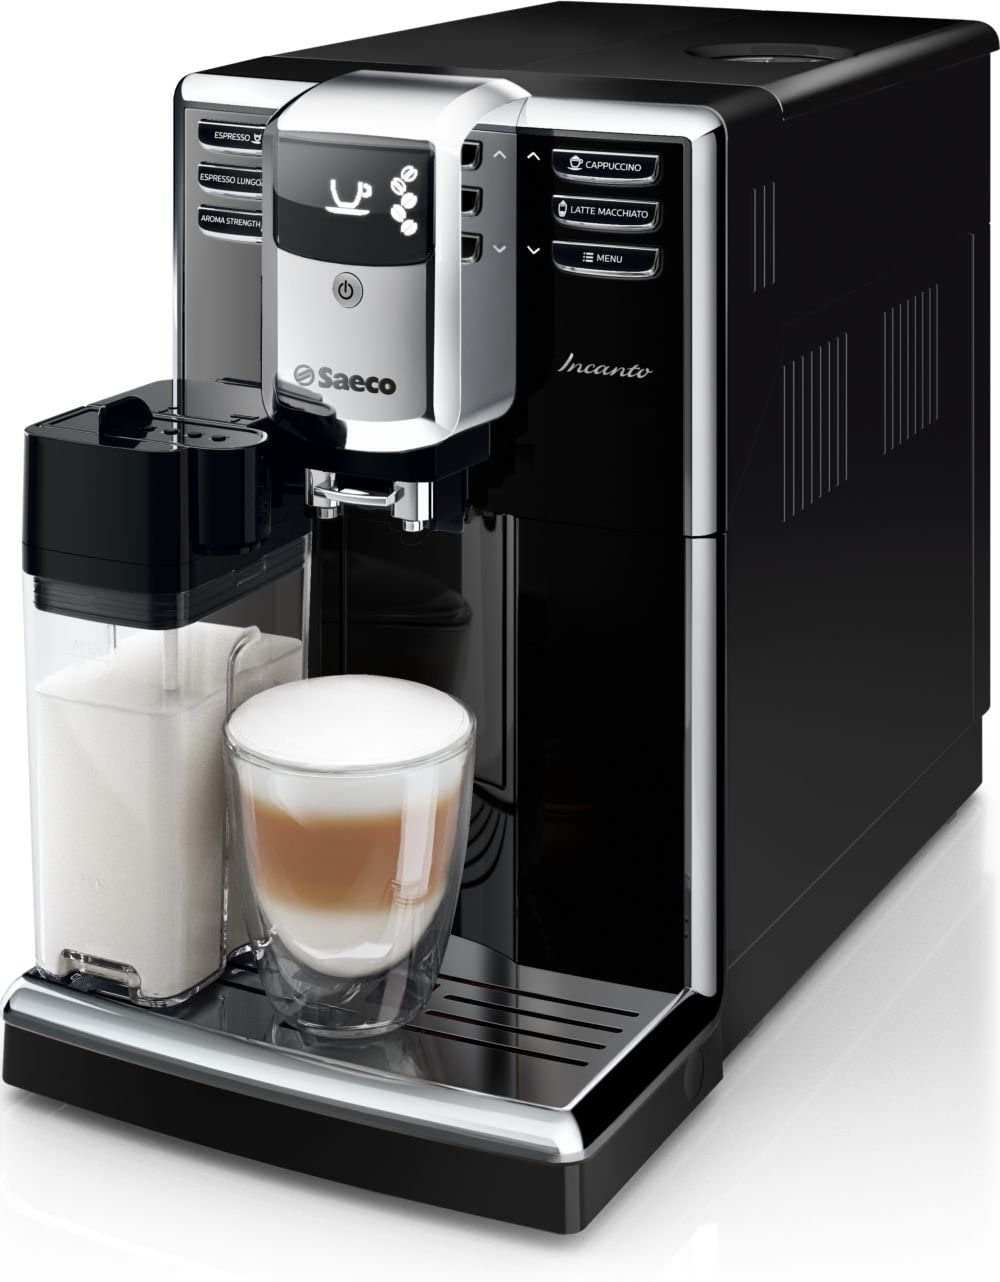 Saeco Incanto HD8916/09 - Cafetera (Independiente, Máquina espresso, 1,8 L, Molinillo integrado, 1850 W, Negro): Amazon.es: Hogar